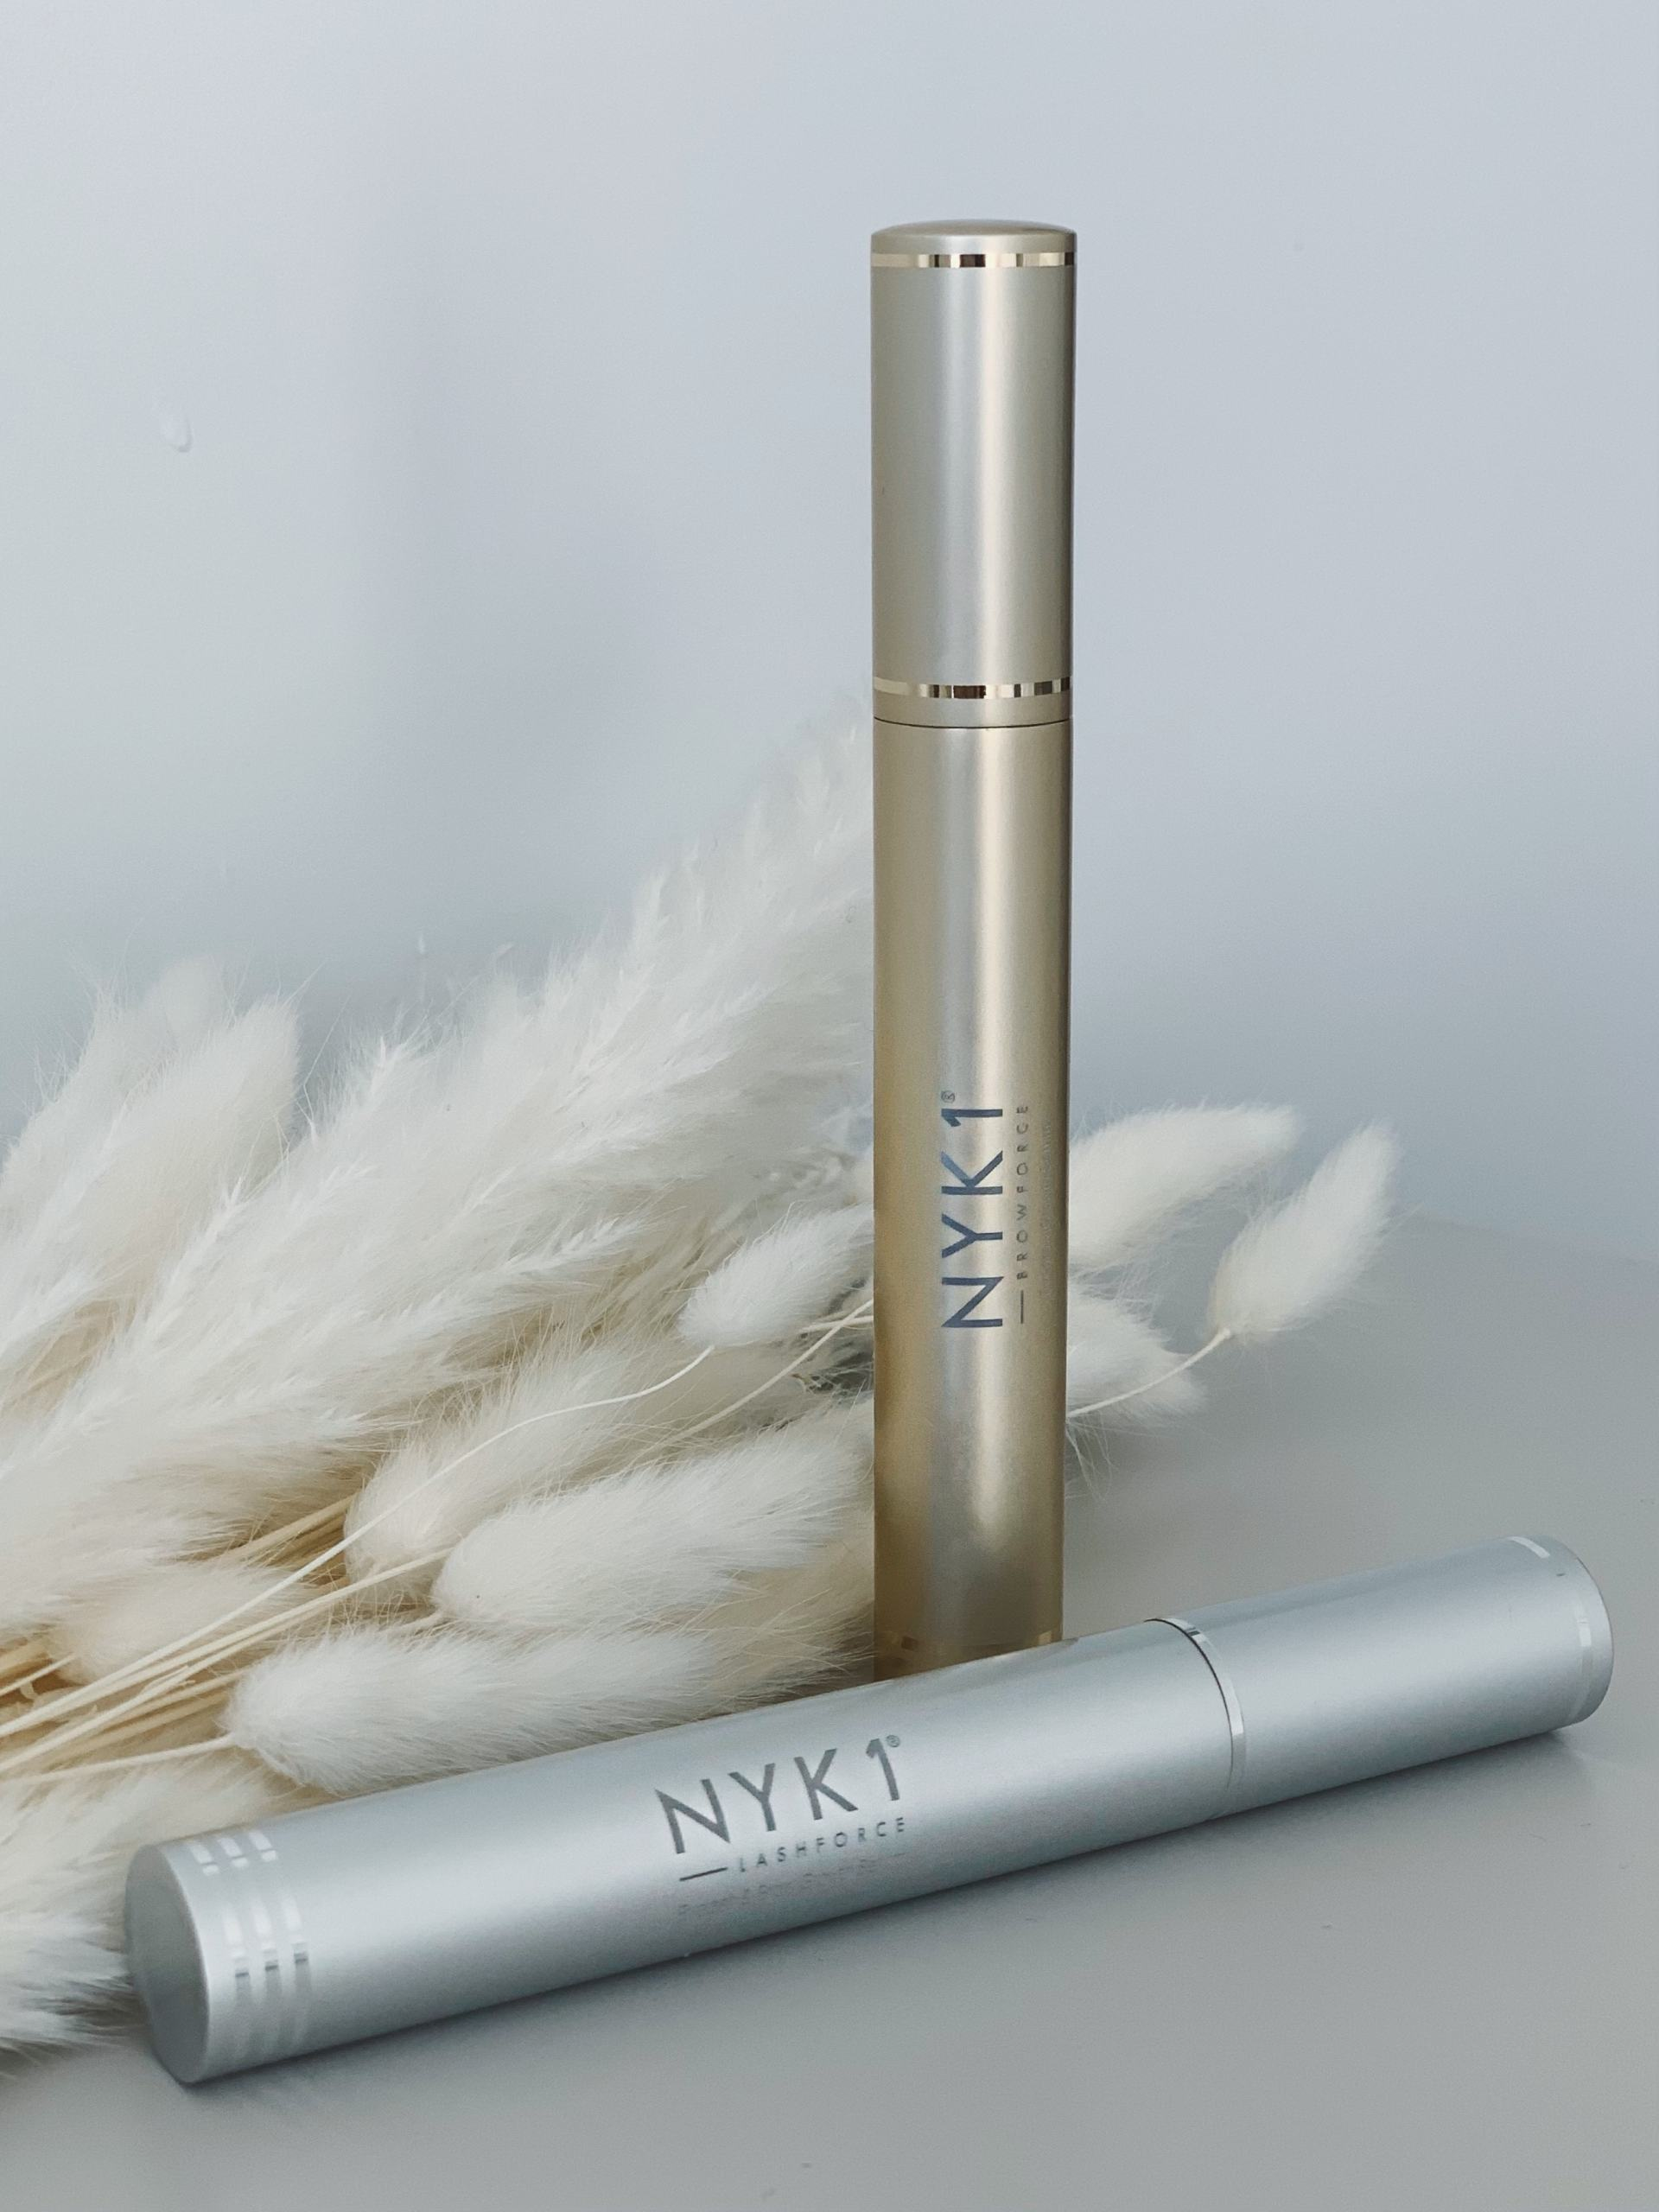 NYK1 Brow Force and NYK1 Lash force